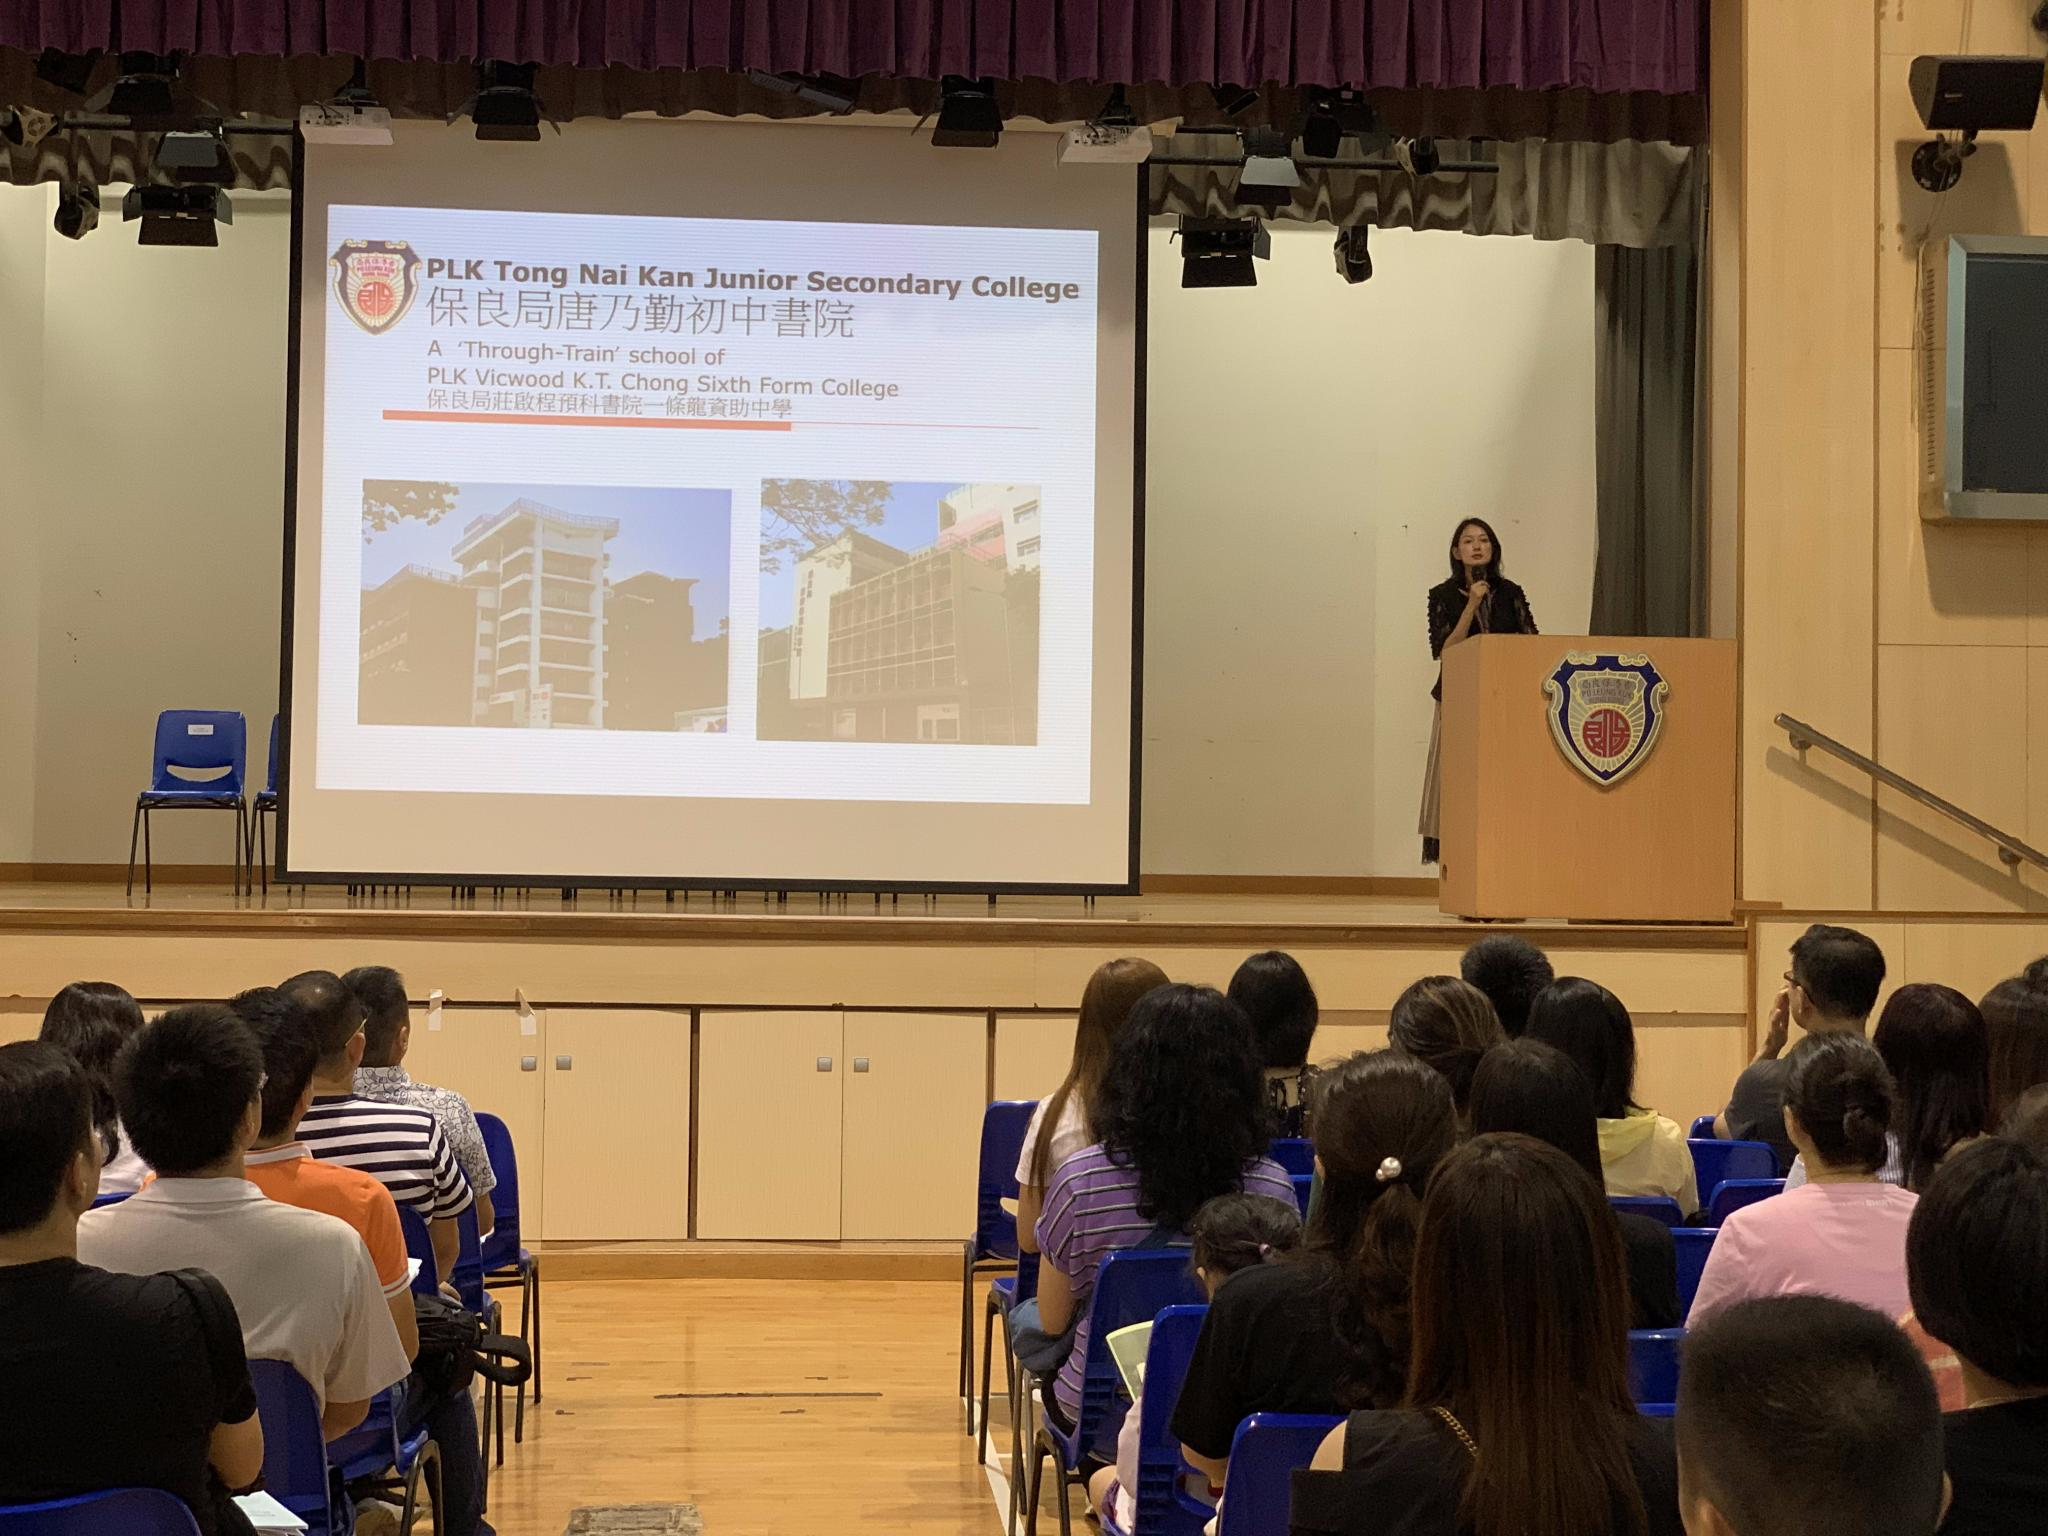 Our Vice Principal, Ms. Siu is giving a welcome address and introductory remarks.